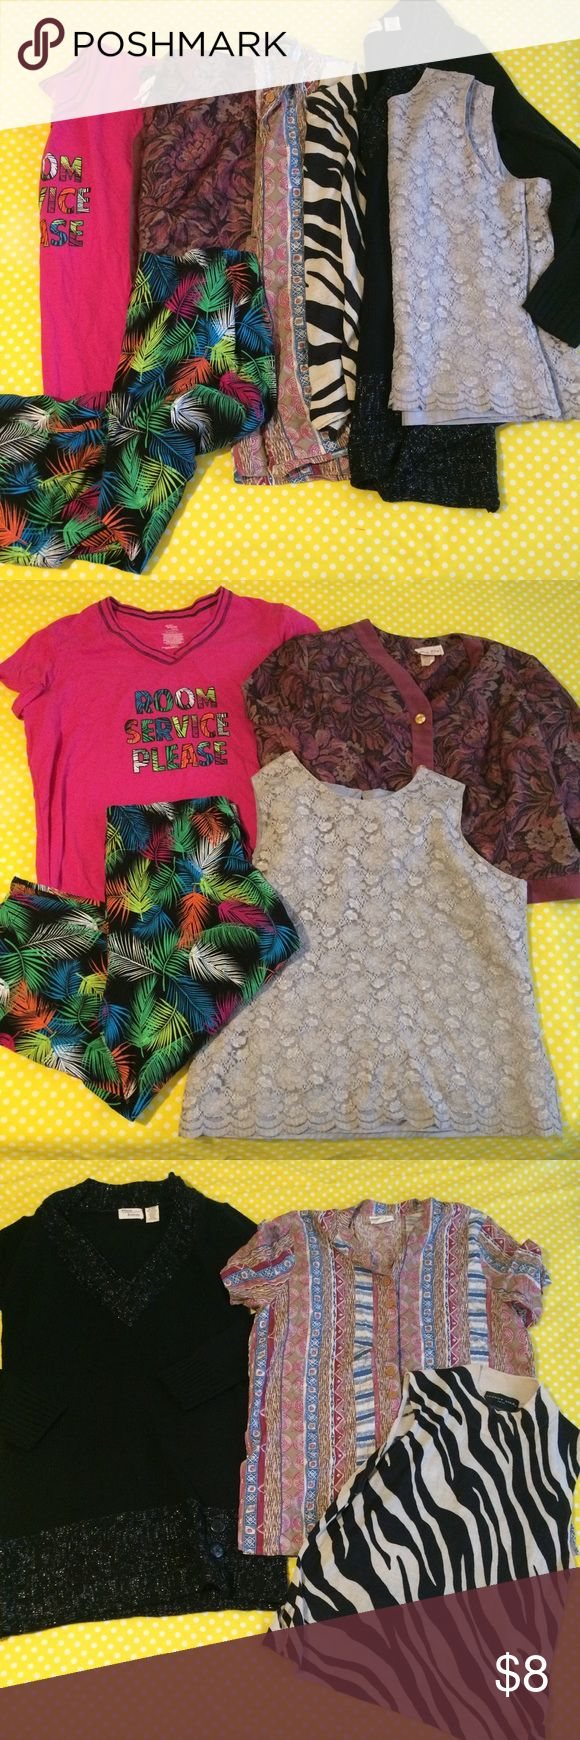 Women's large and extra large clothes bundle Lot Bundle Lot for women's sizes are large and extra large  3rd photo shows all size extra large  Last pic shows flaws one on black sweater dress has small snag hole and colorful tropical pajama capris have some light wash wear  #bundle #womens #tops #sweaterdress #knit #extralarge #large Tops Tees - Short Sleeve